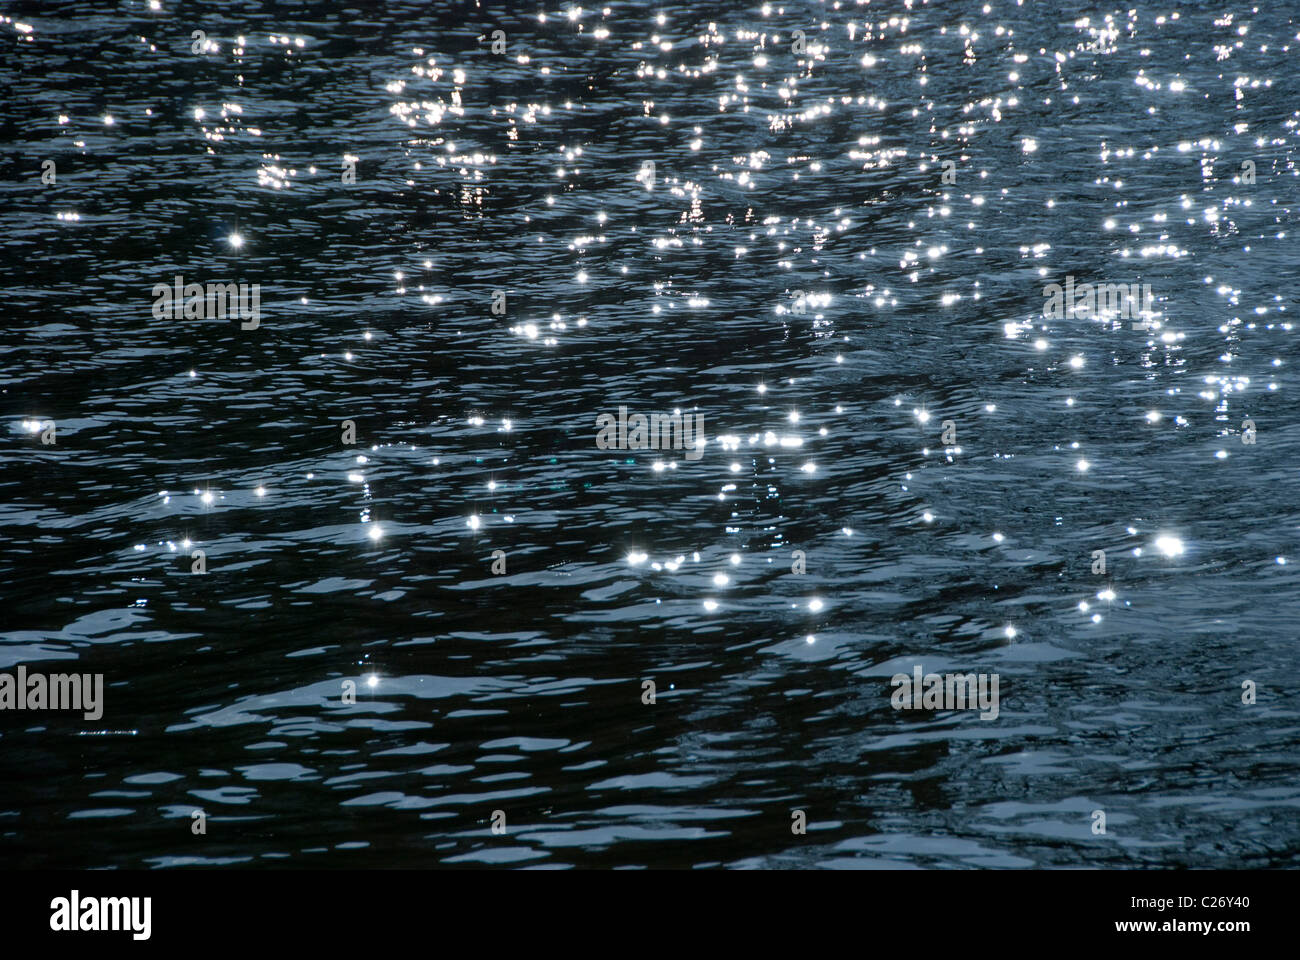 water glimmering - Stock Image